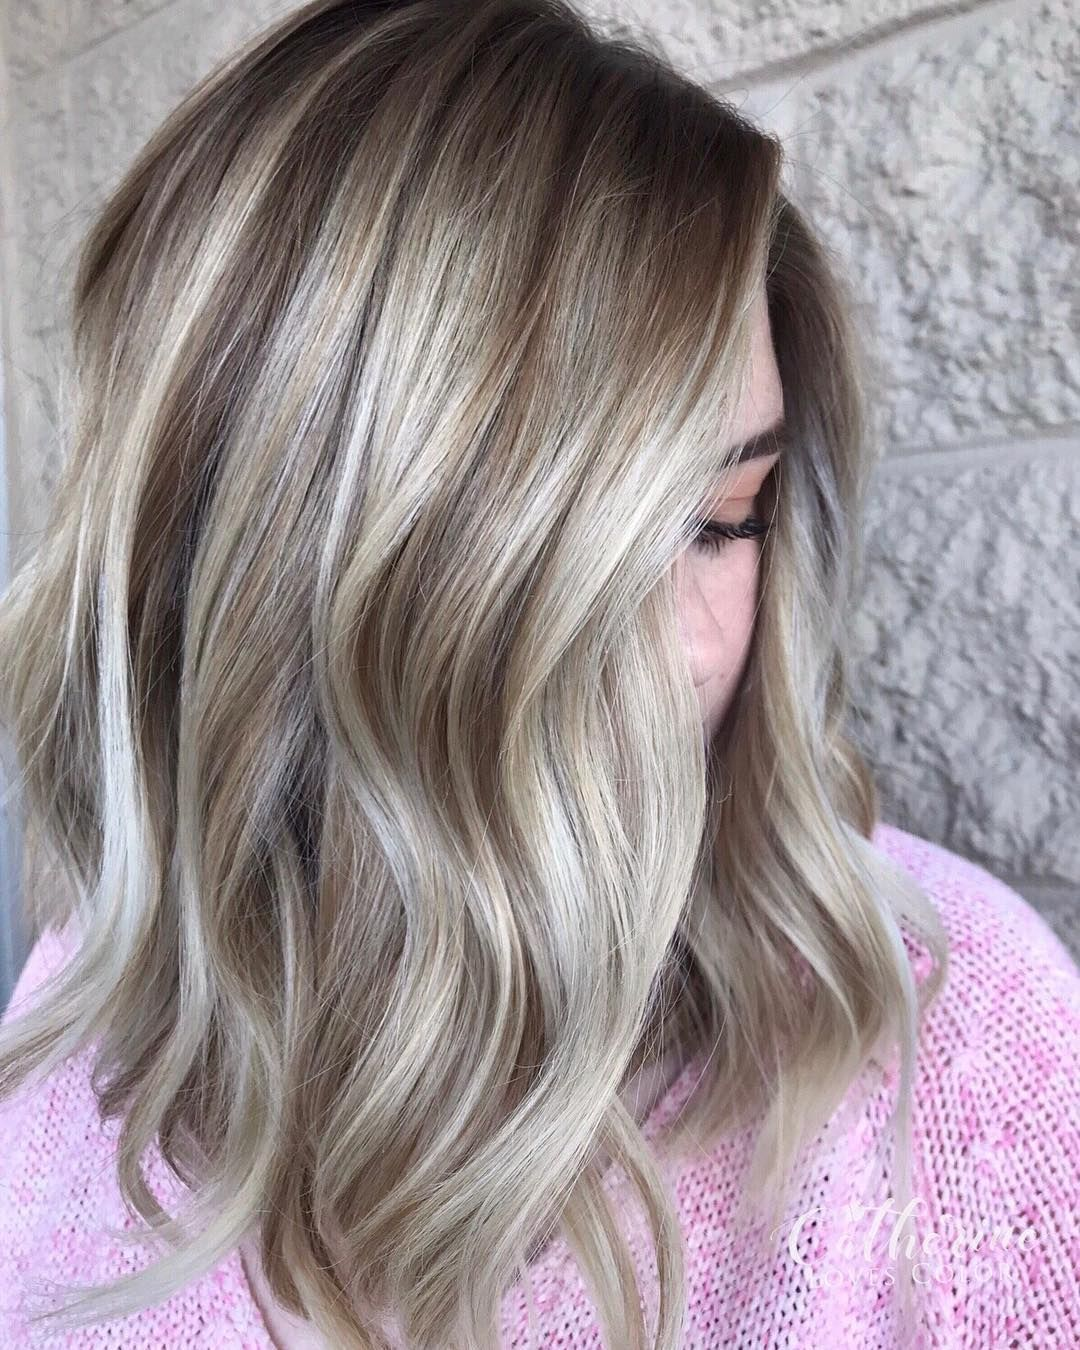 Blonde Roast Is the Latest Coffee-Inspired Hair-Co